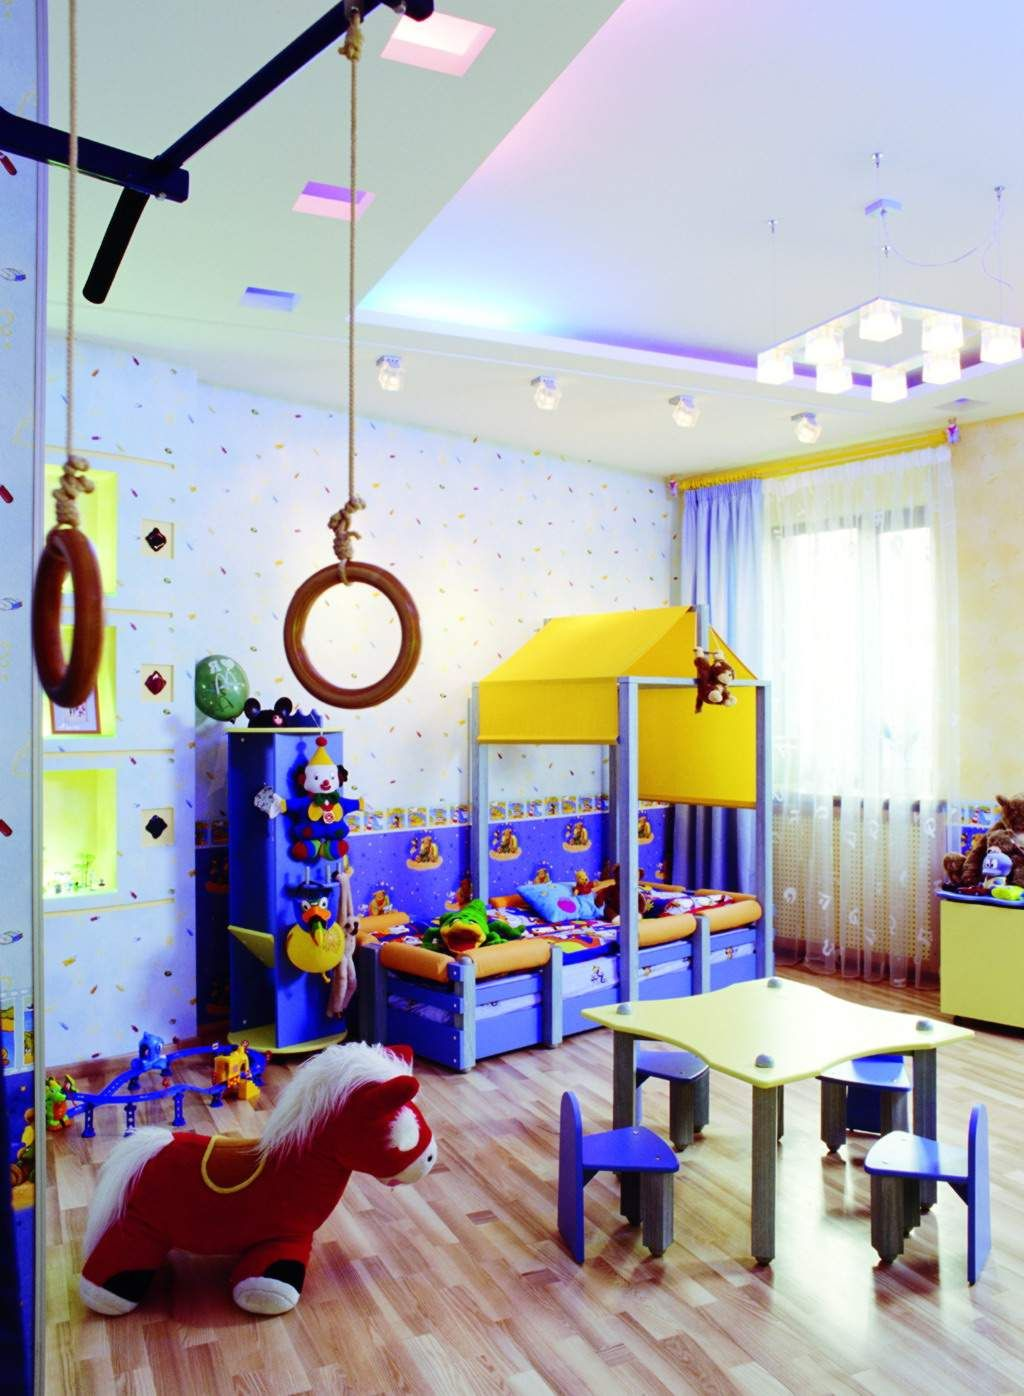 Kids bedroom kids room interior design with play and learn for Kids bedroom designs